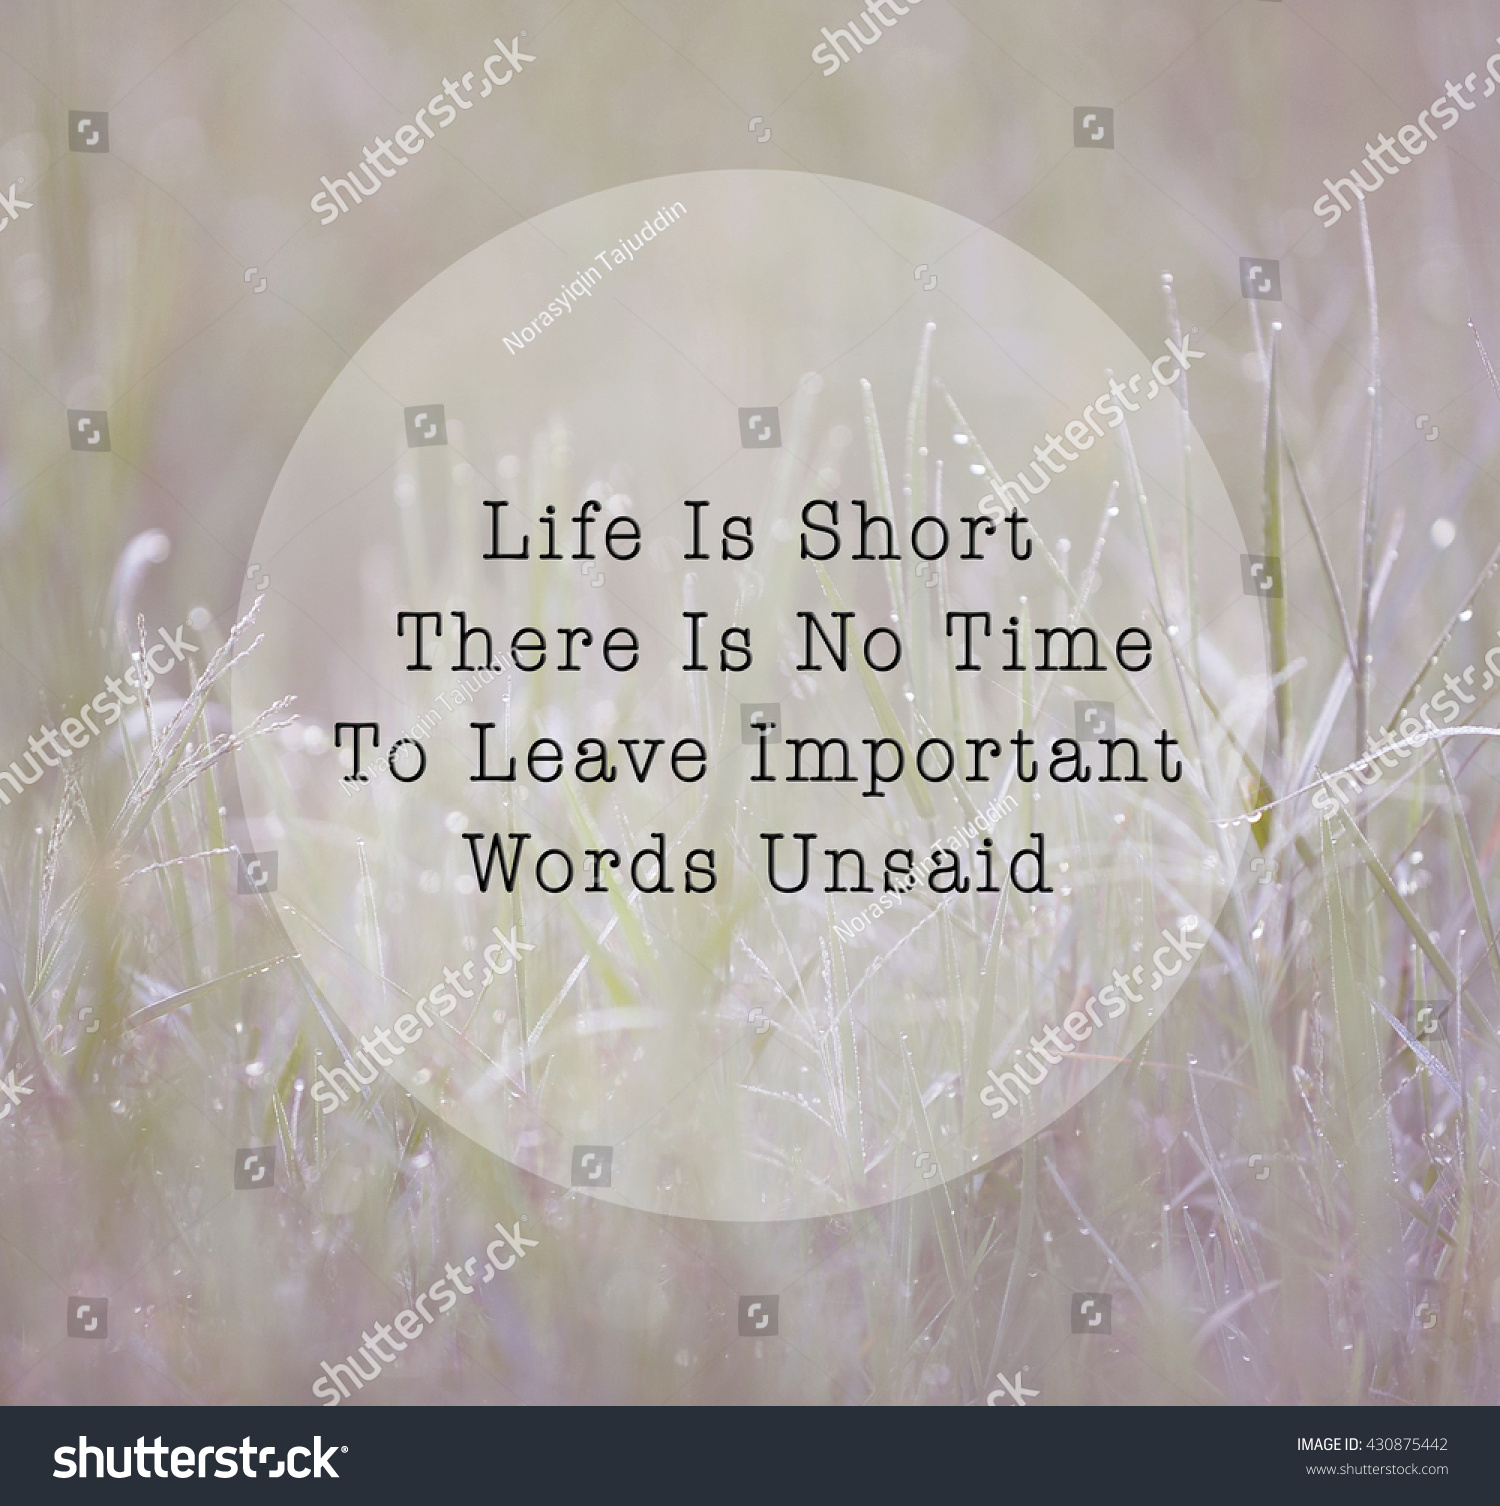 Short Inspirational Life Quotes Inspirational Life Quote Phrase Life Short Stock Photo 430875442